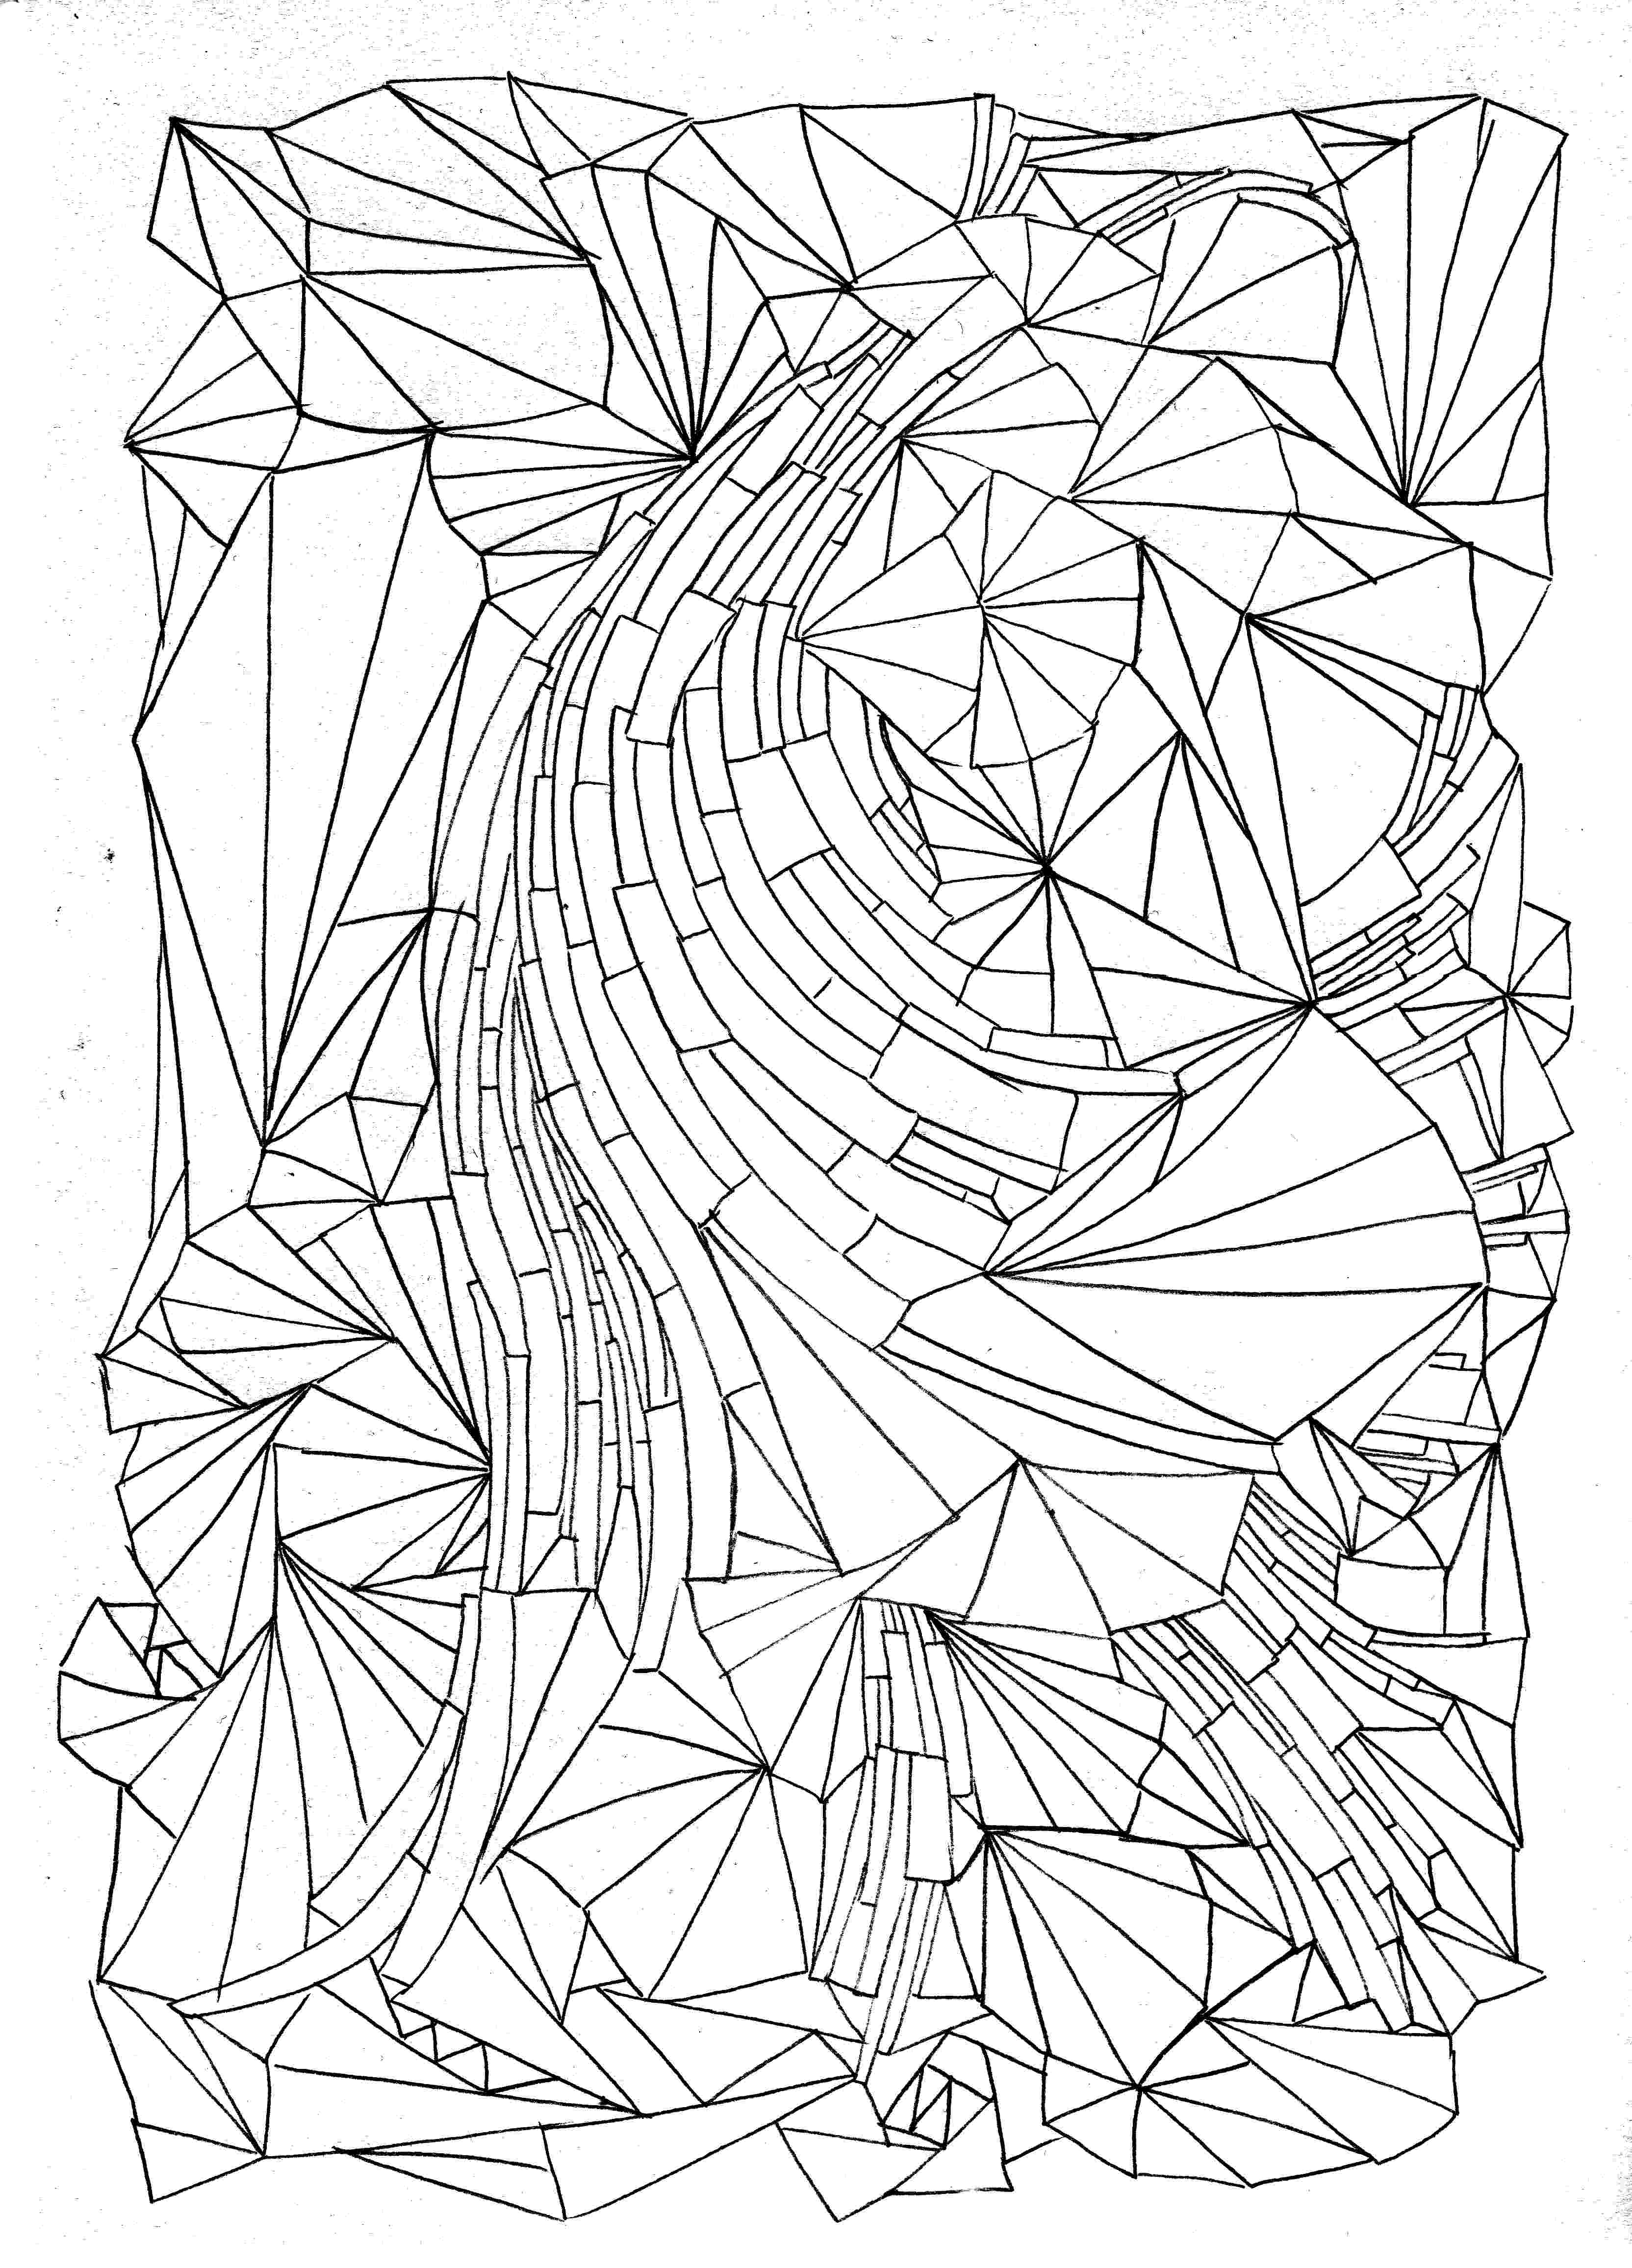 patterns colouring colouring designs thelinoprinter patterns colouring